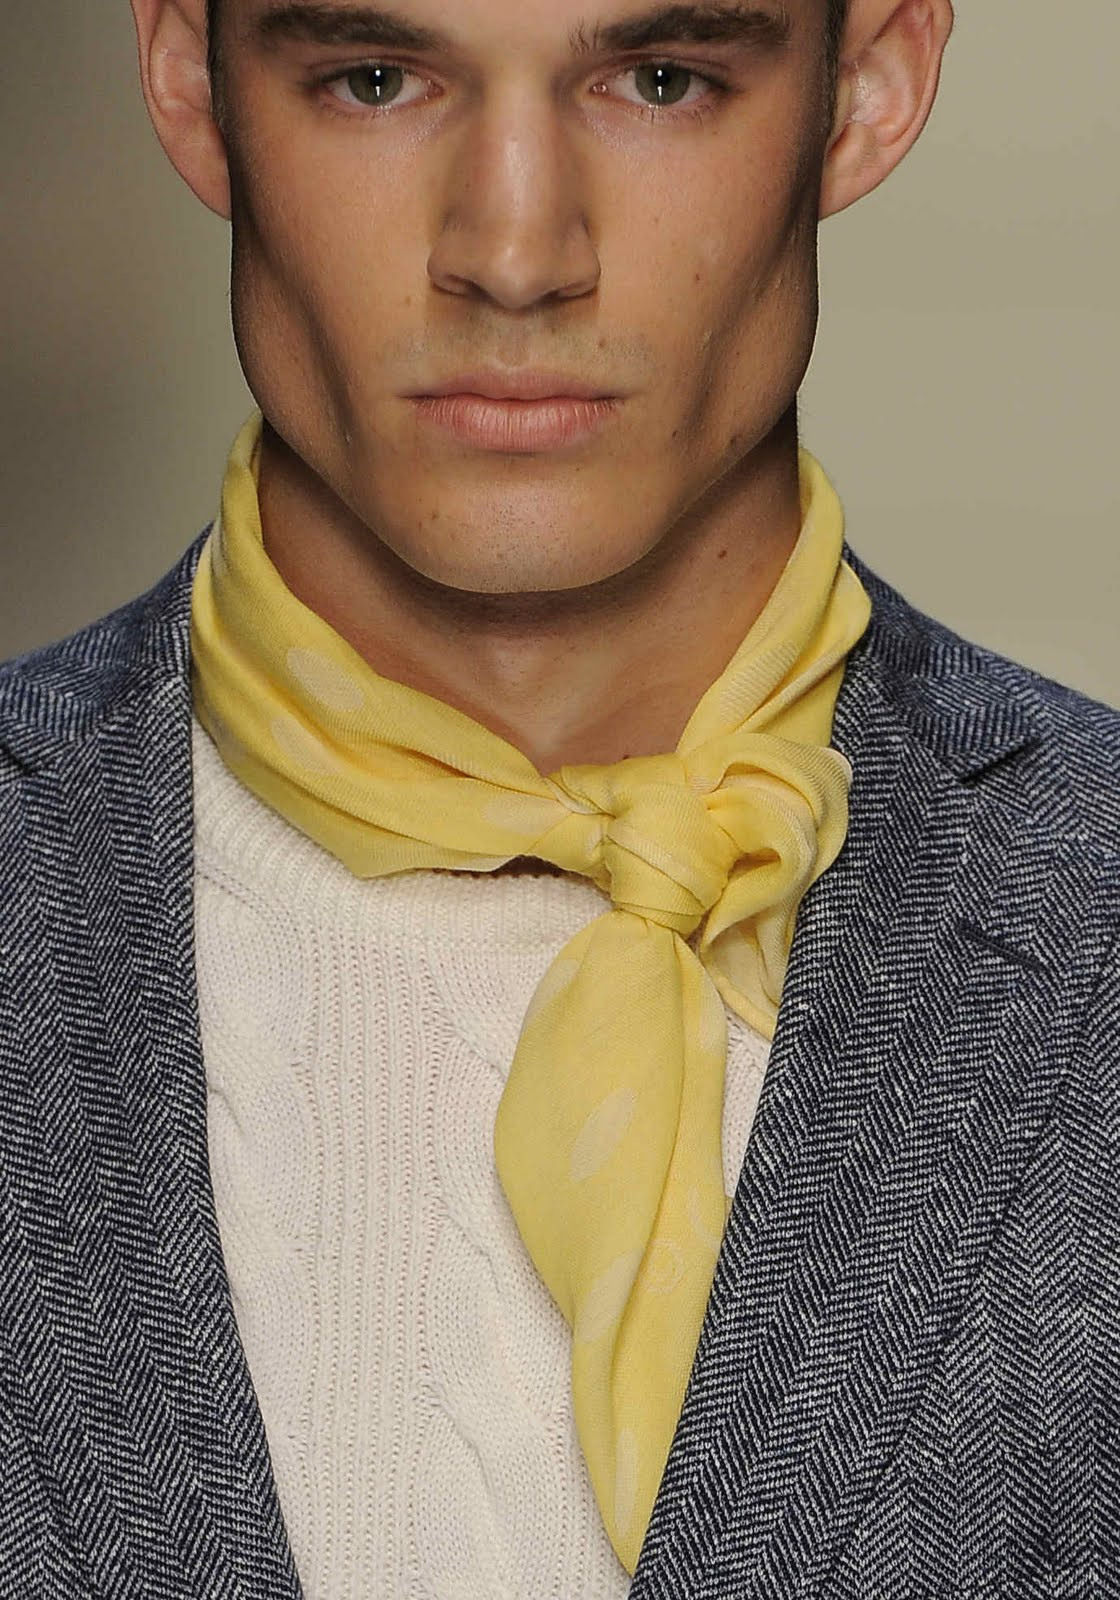 Neckerchief Men S Fashion